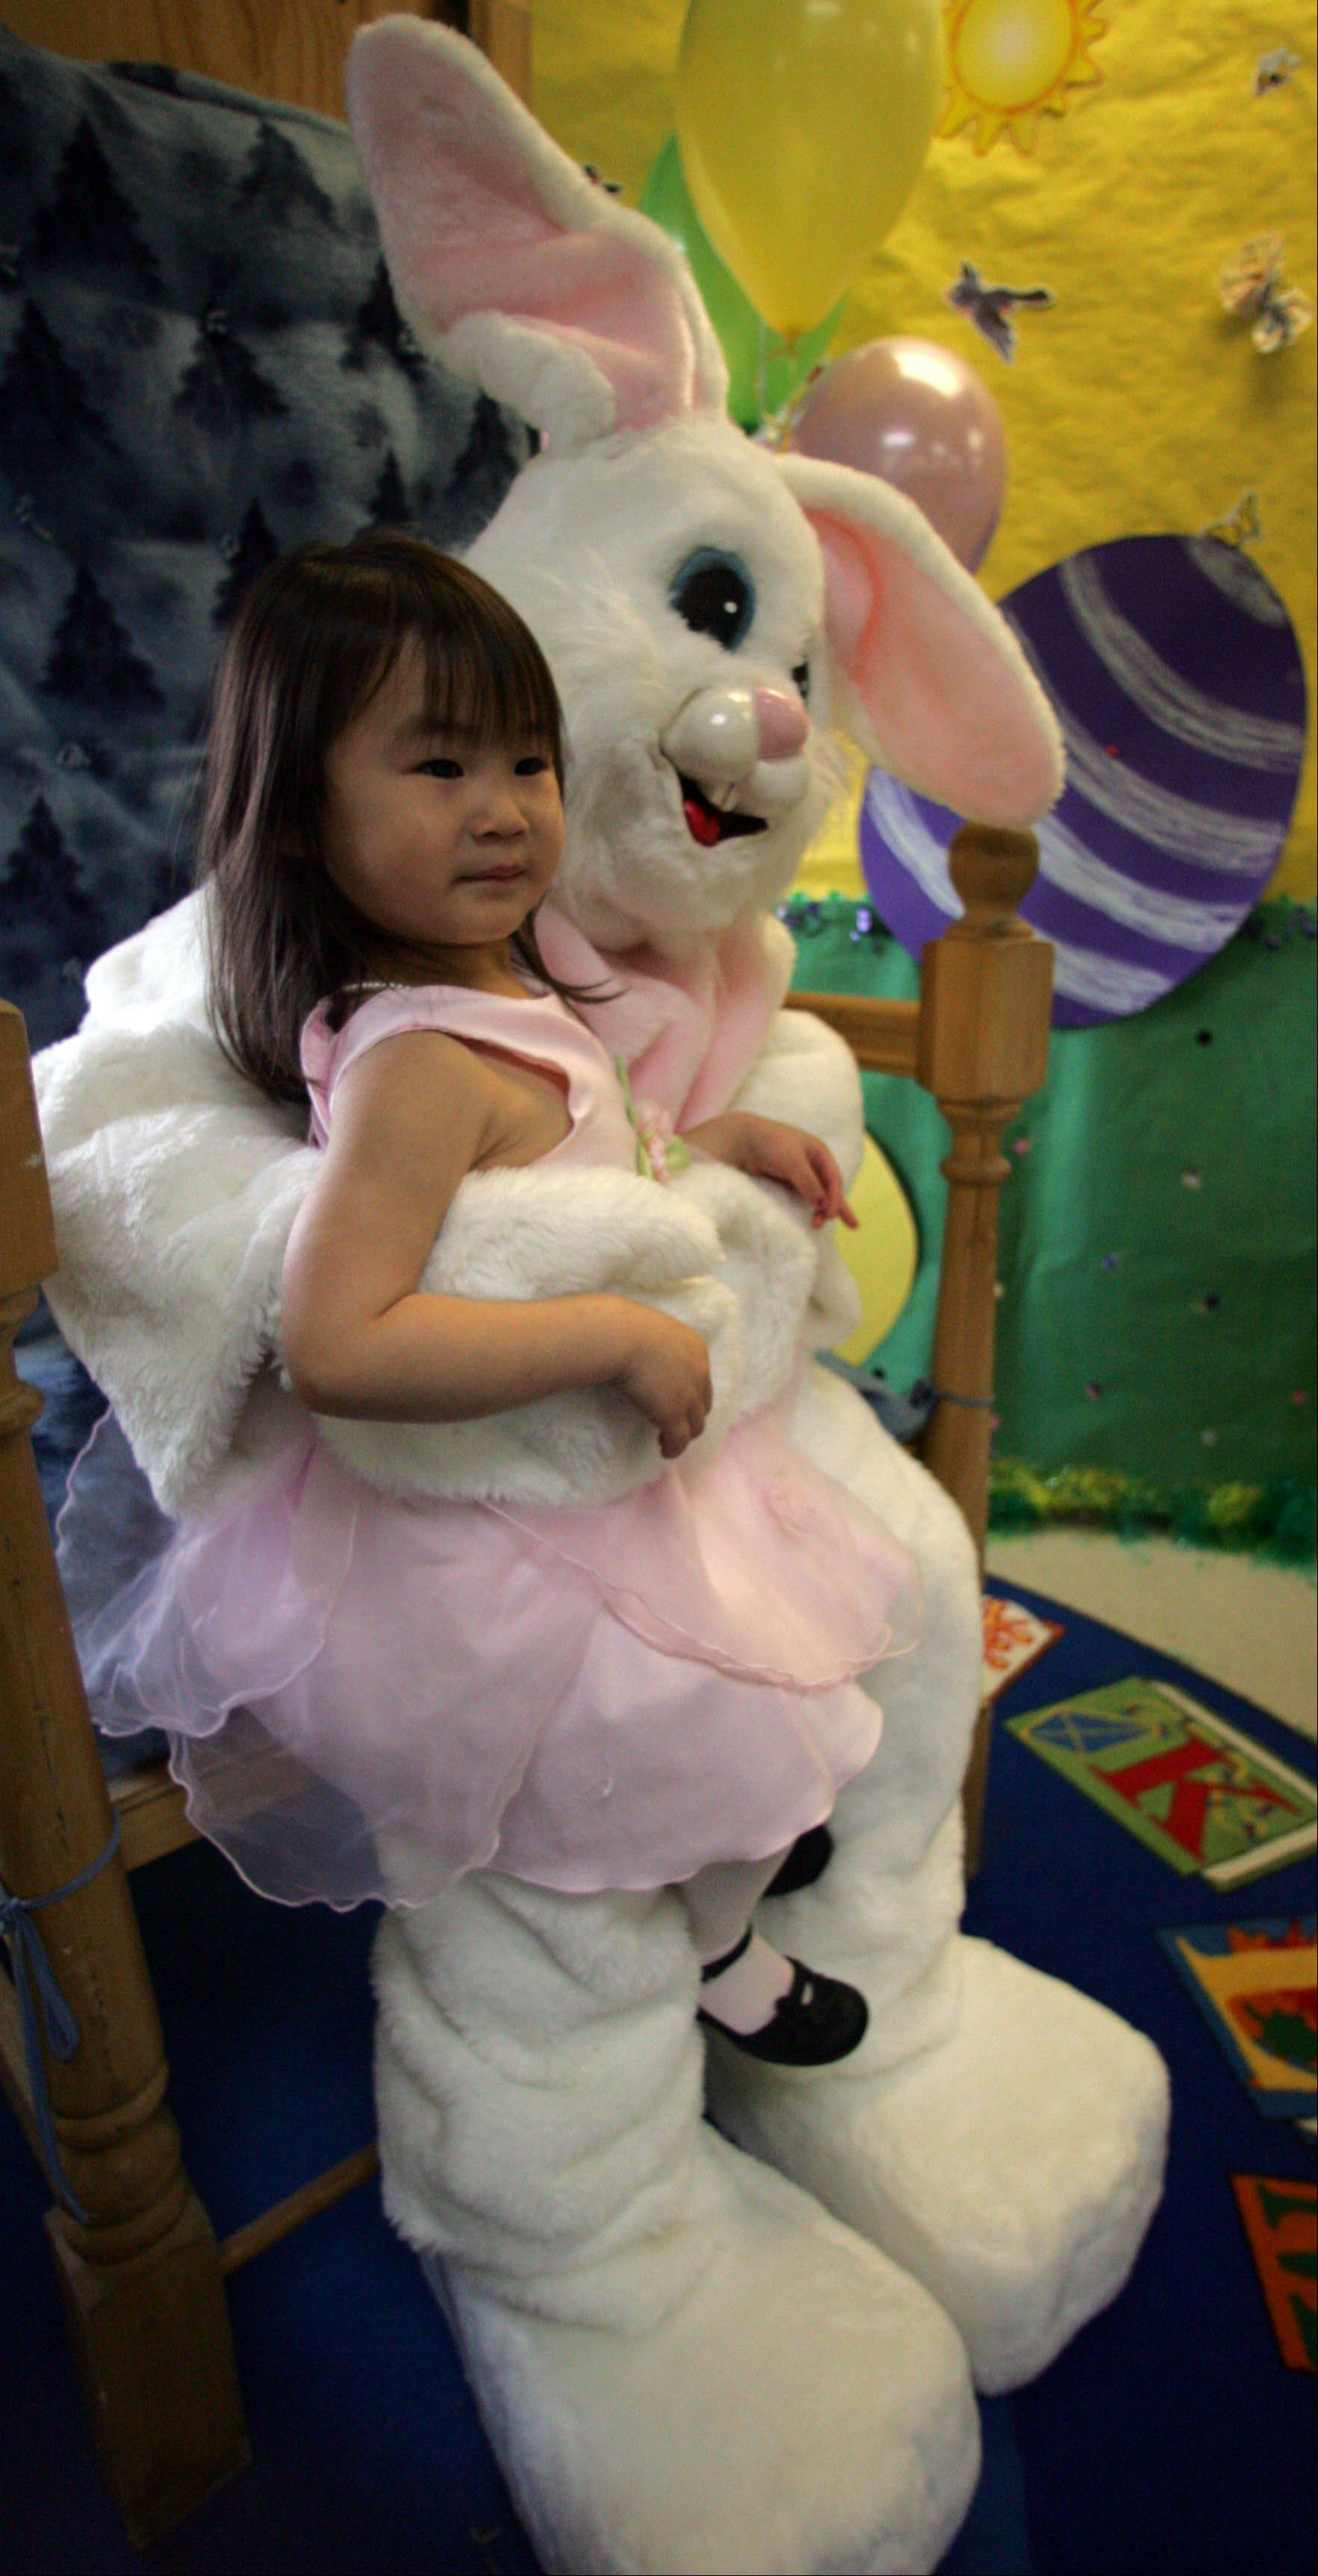 Katie Moore, 3, South Elgin, visits with the Easter Bunny, played by Lauren Alvarez, 16, Elgin, at a previous Breakfast with the Easter Bunny held by the South Elgin Parks and Recreation Department.